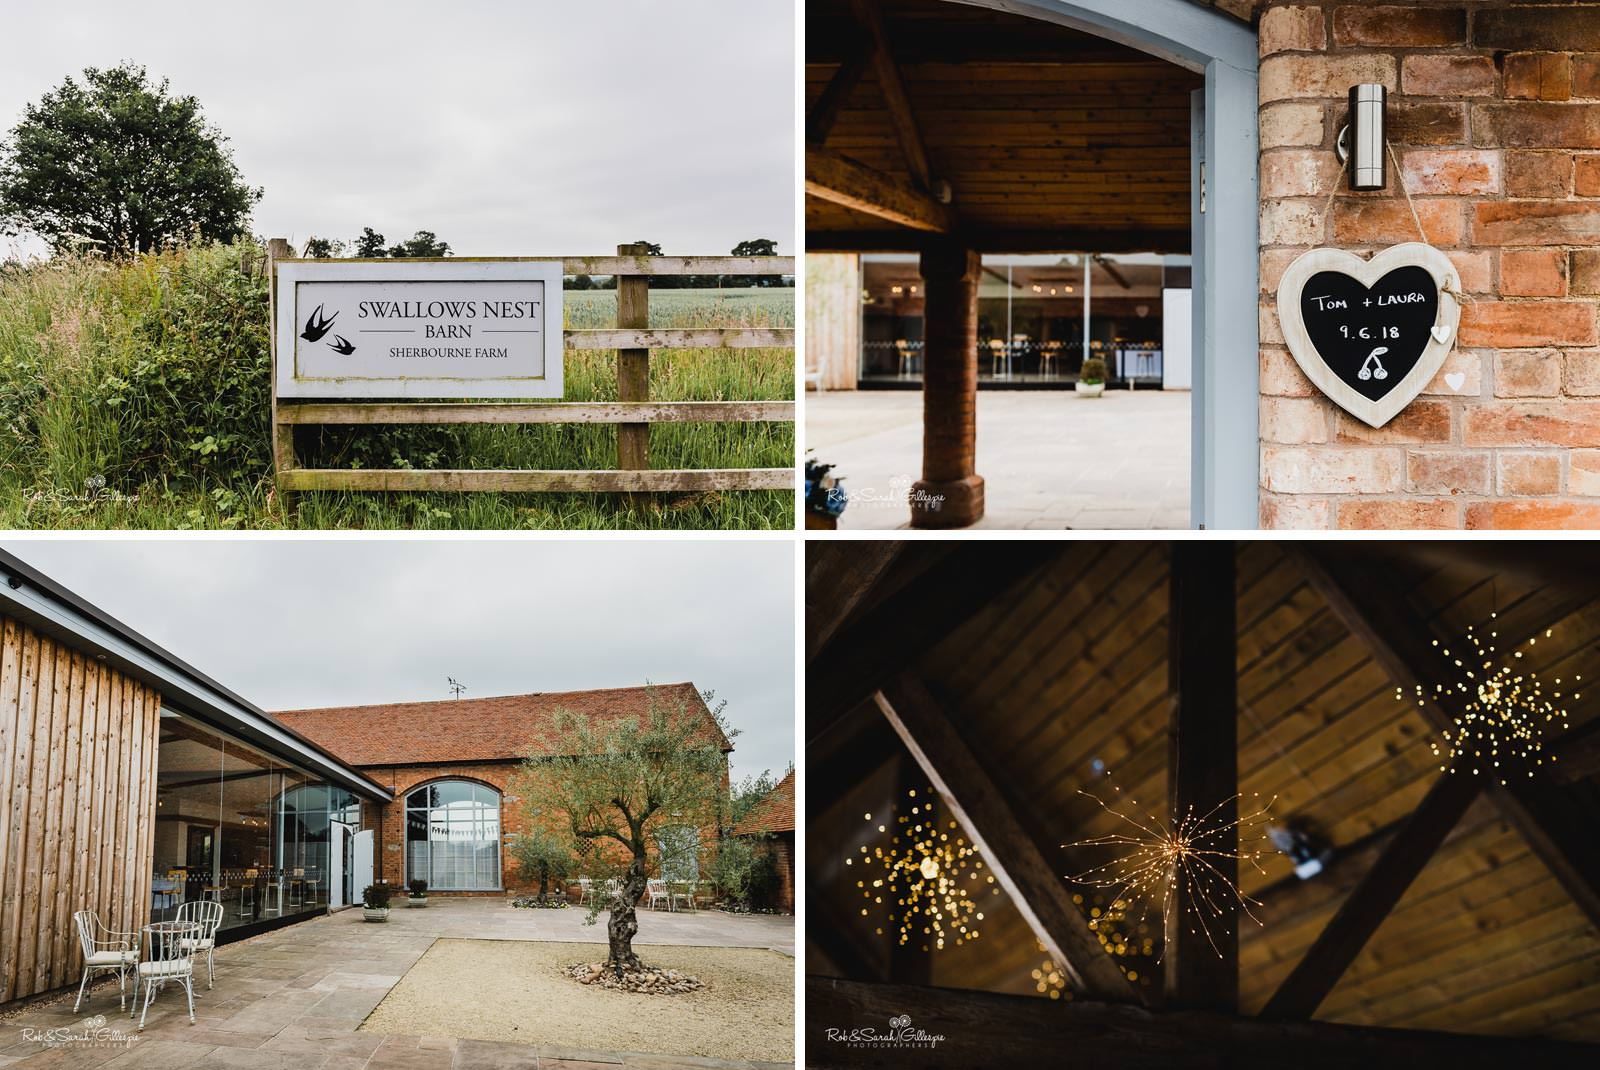 Swallows Nest Barn Warwickshire wedding venue